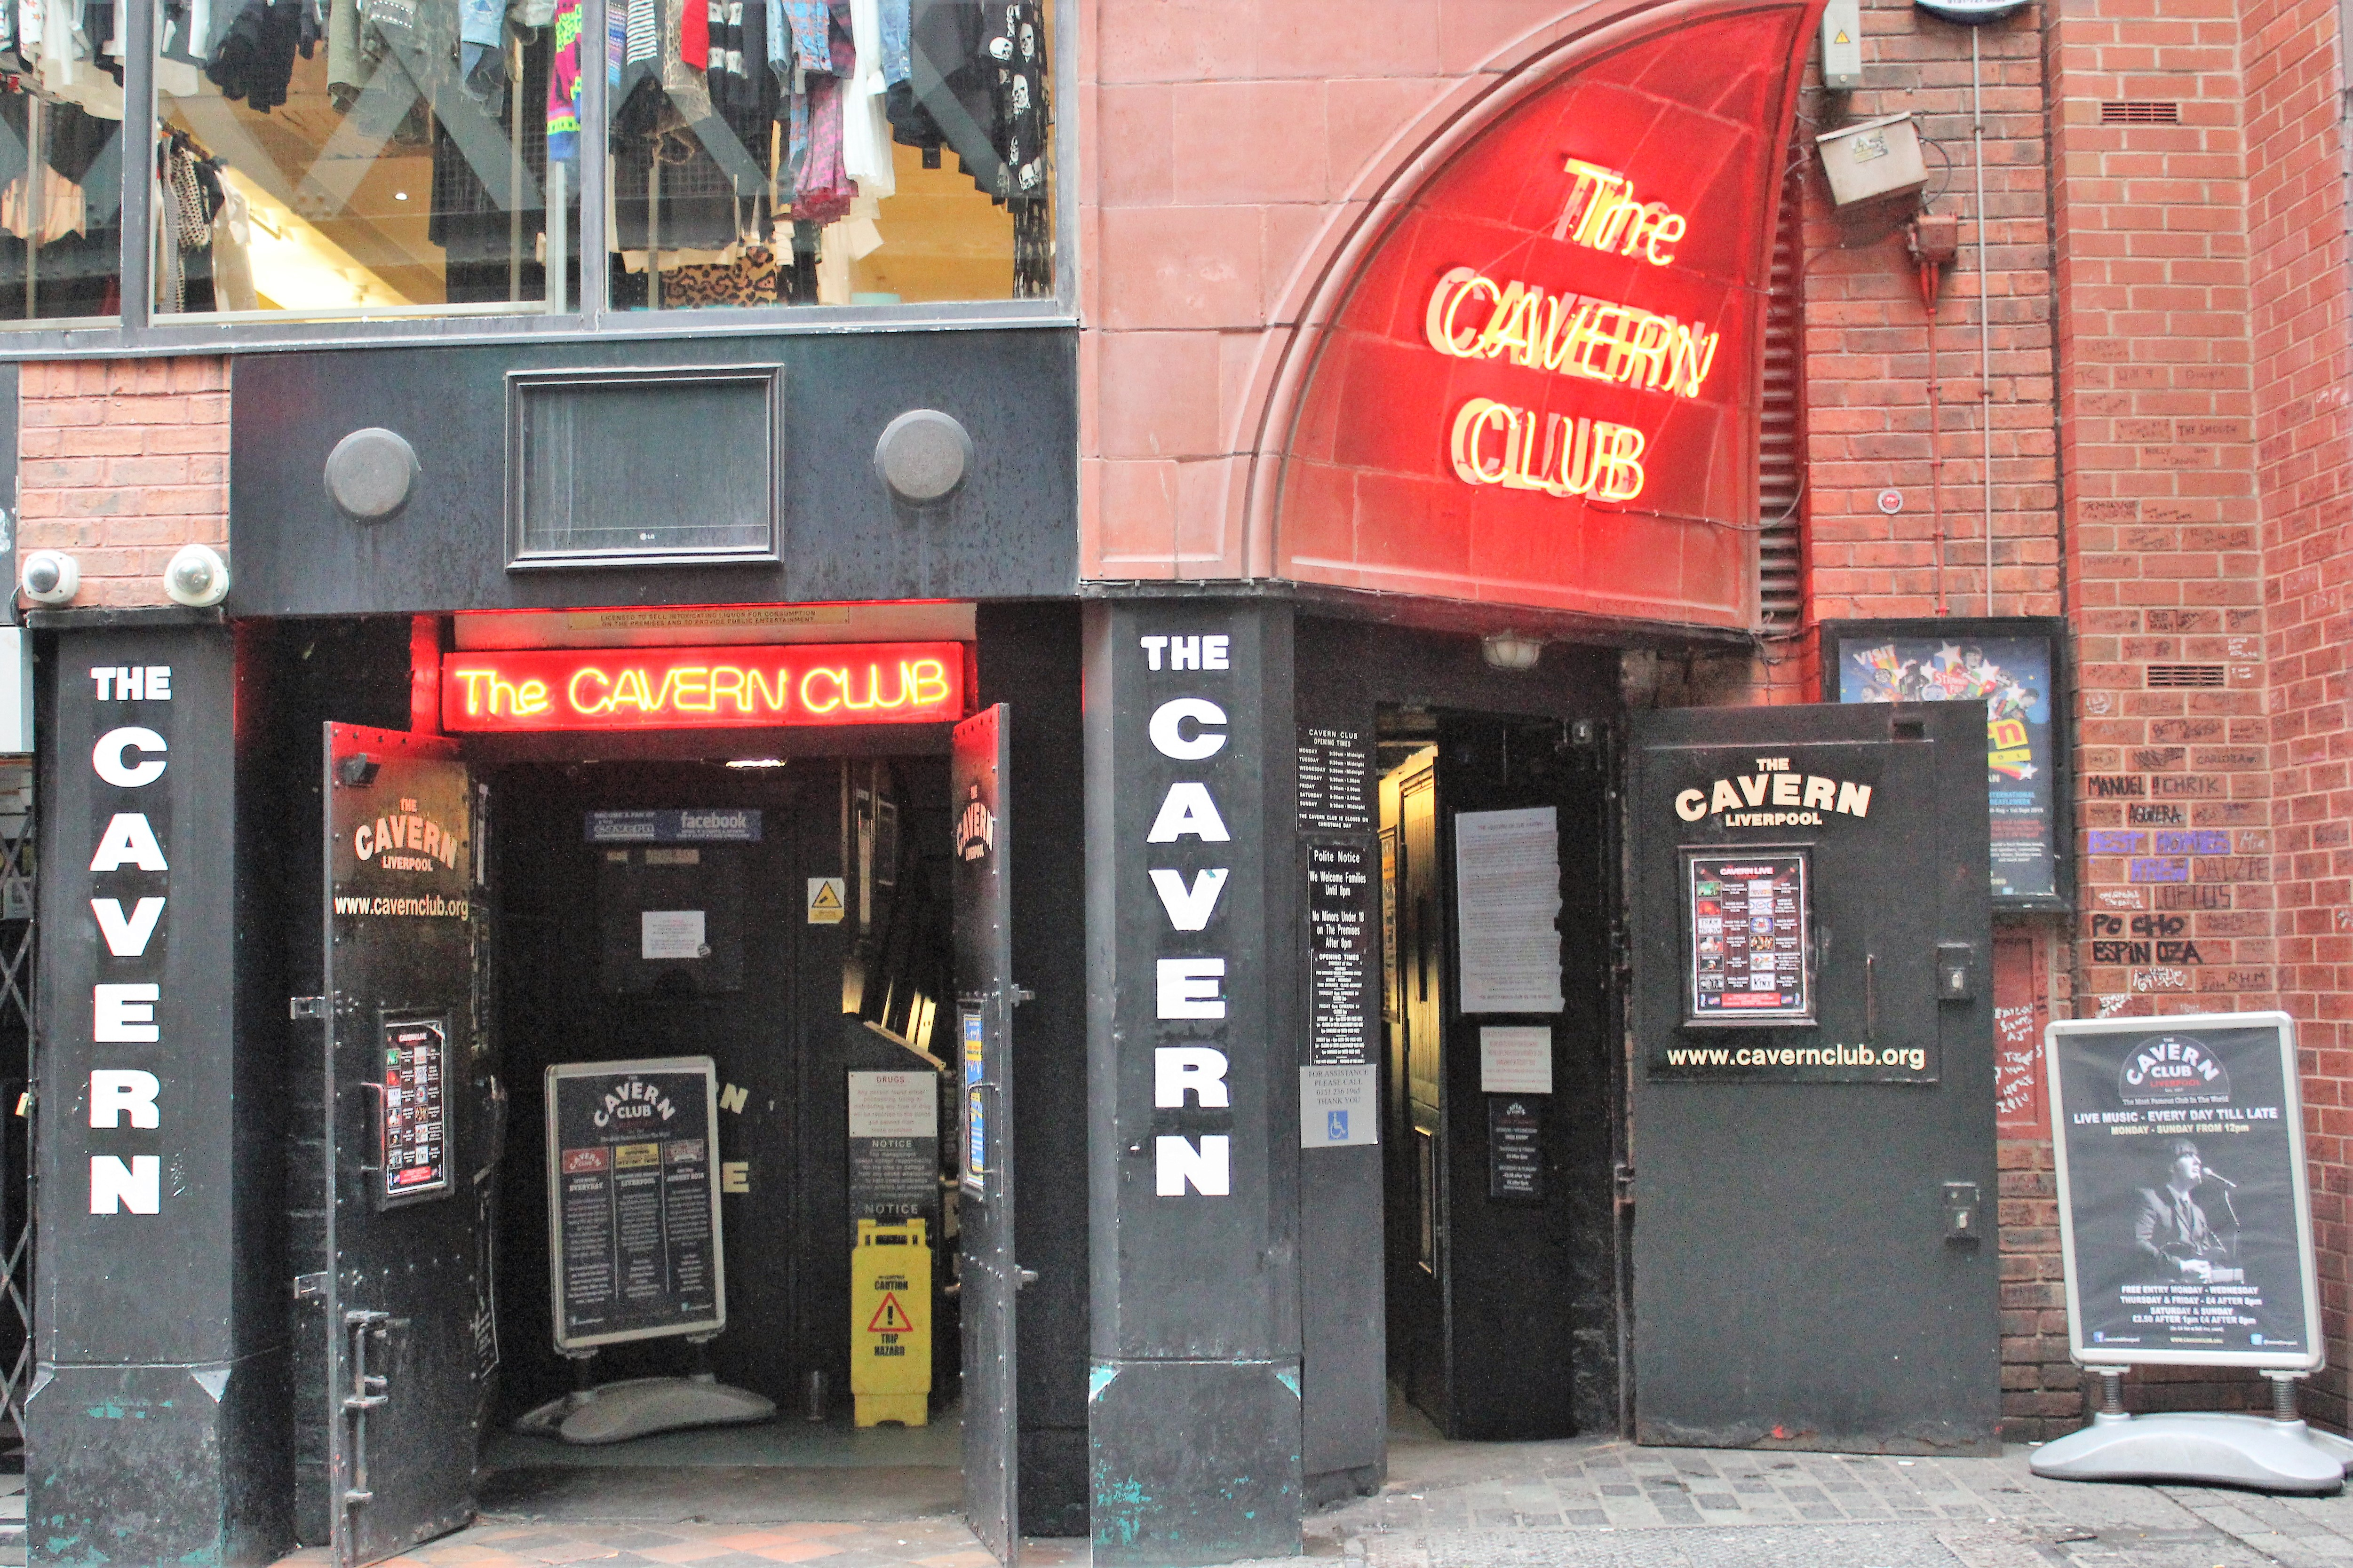 Entrada do Cavern Club em Liverpool